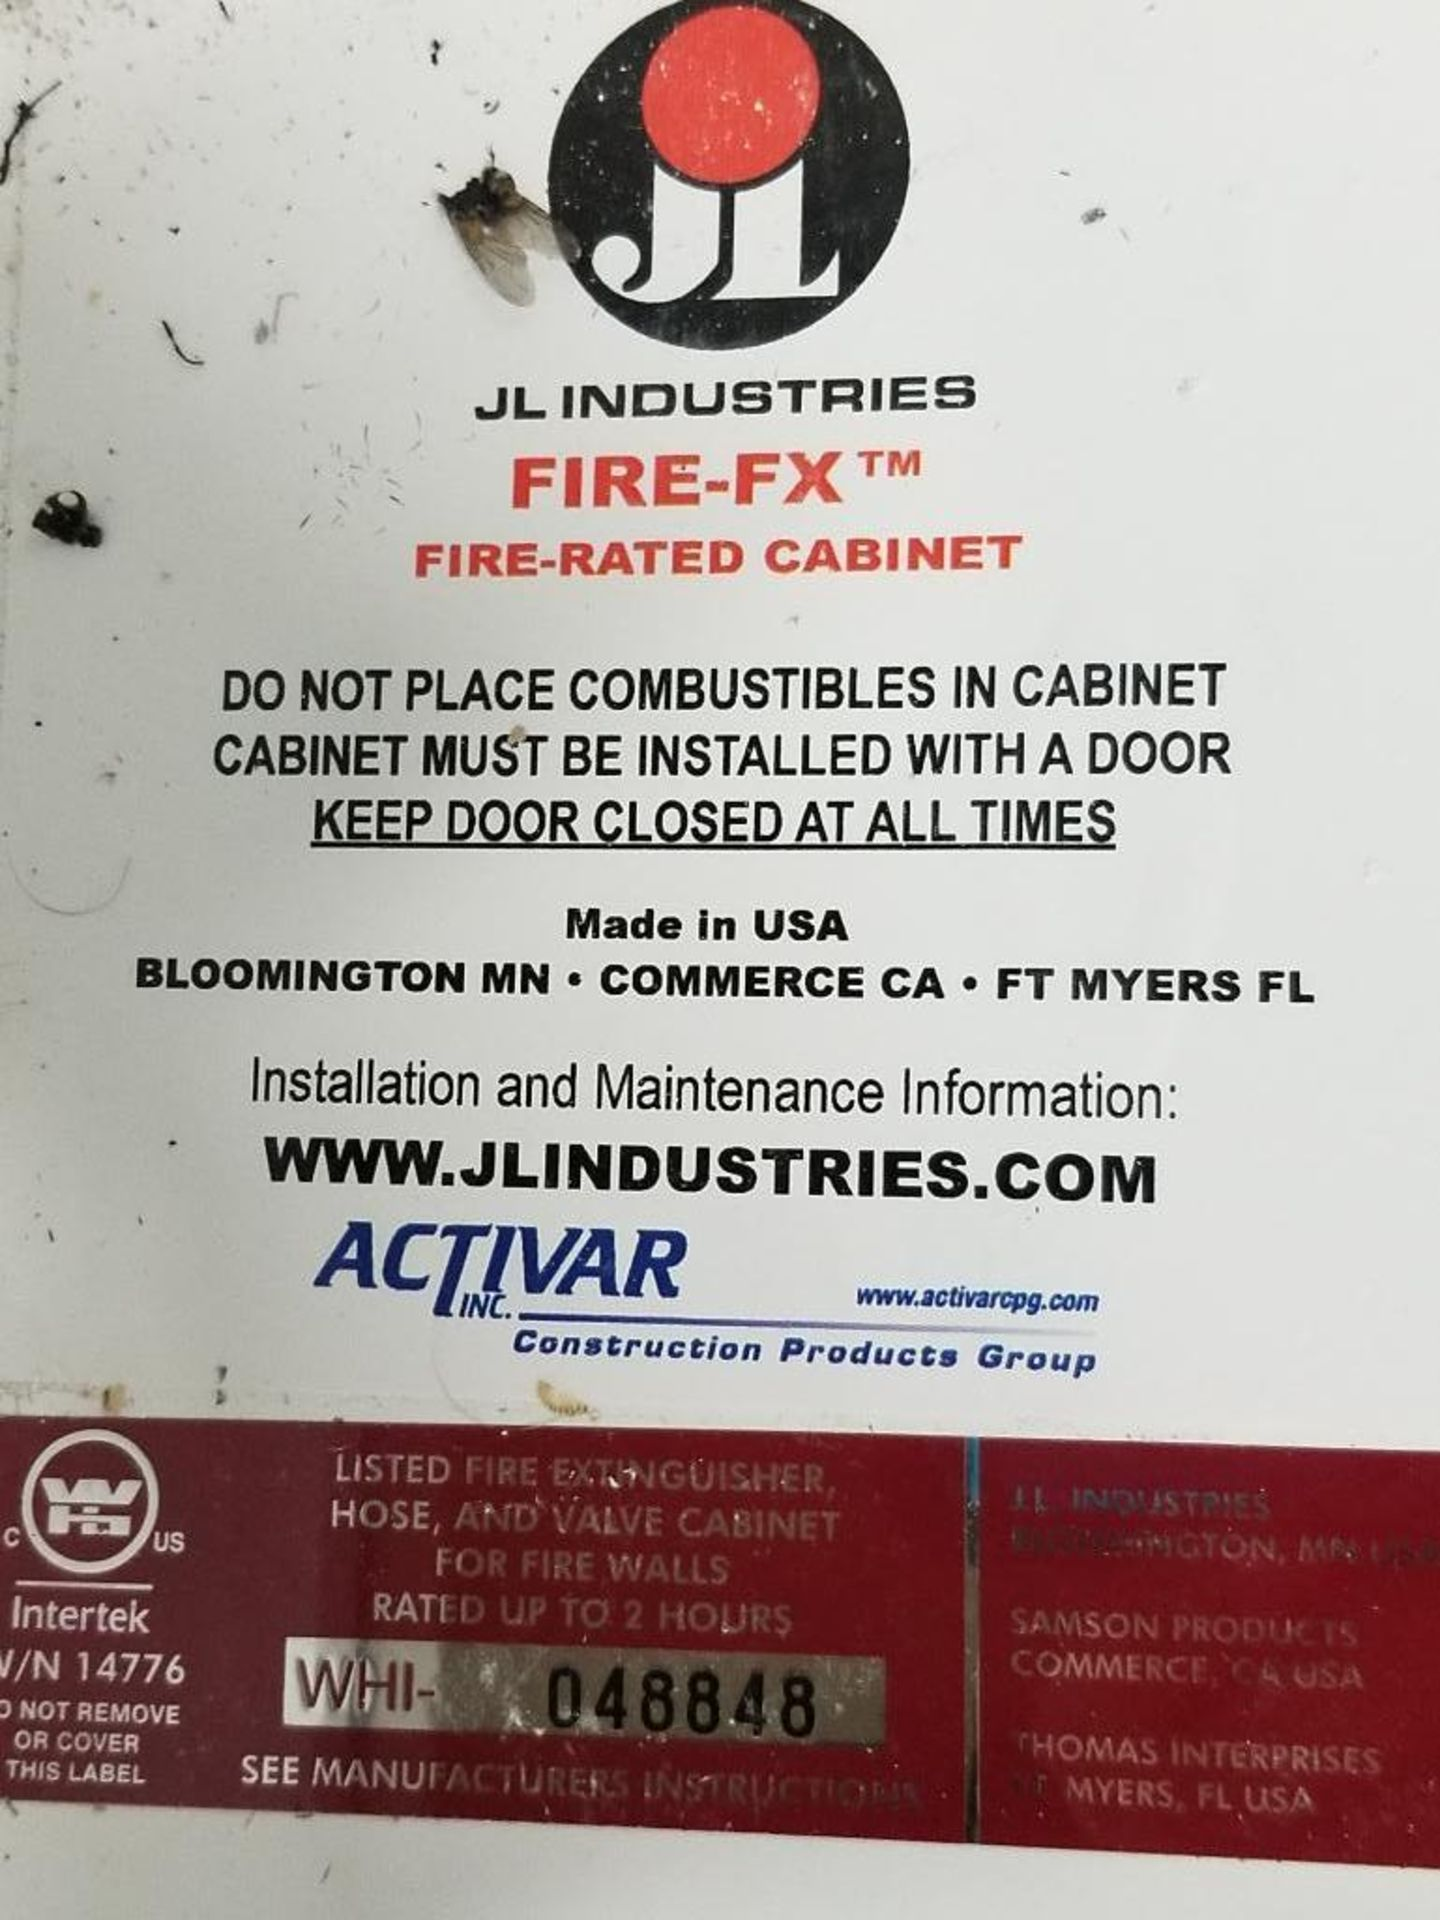 JL Industries Fire-FX cabinet. WHI-048848. - Image 2 of 7